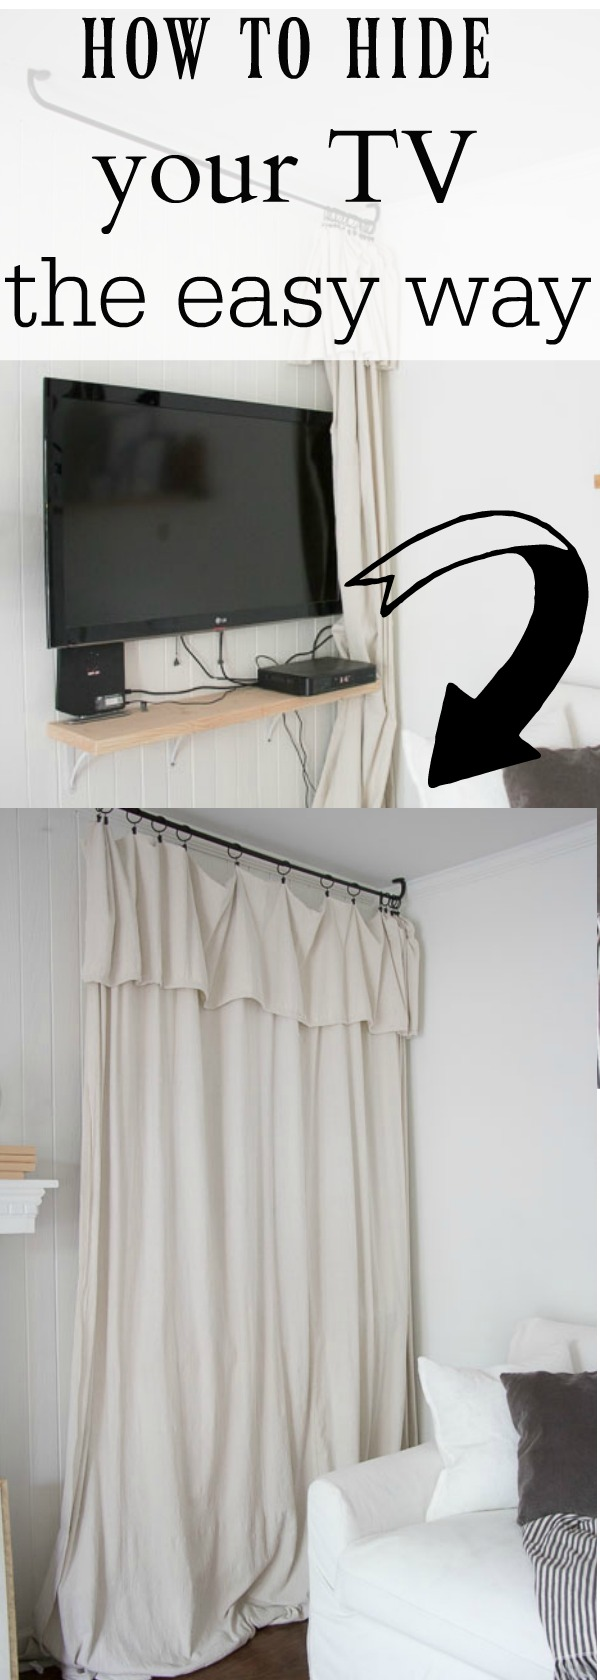 How to Hide your TV the easy way